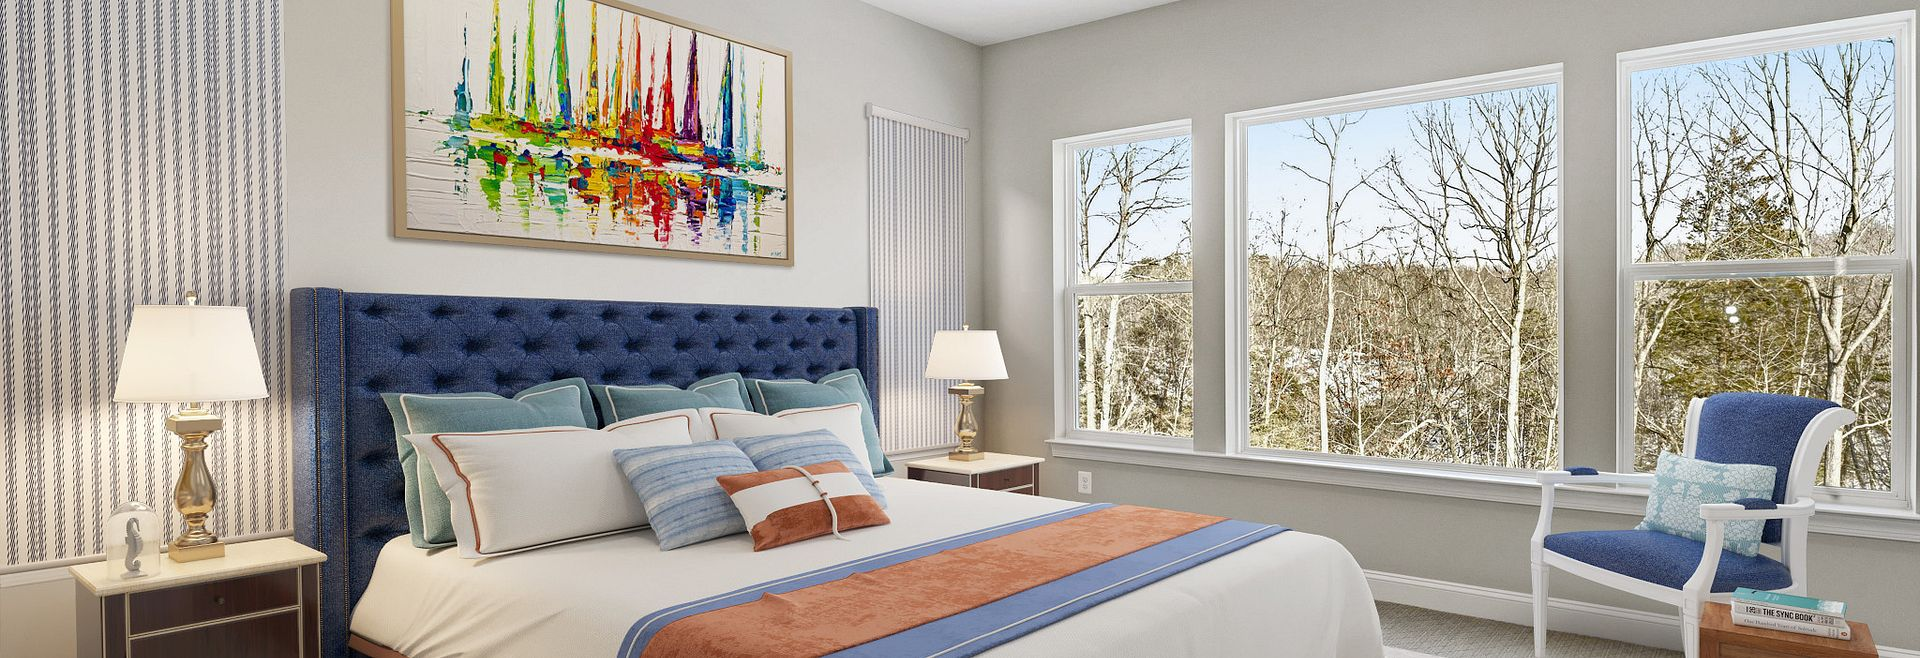 Trilogy at Lake Frederick Quick Move In Hensely Plan Master Bed